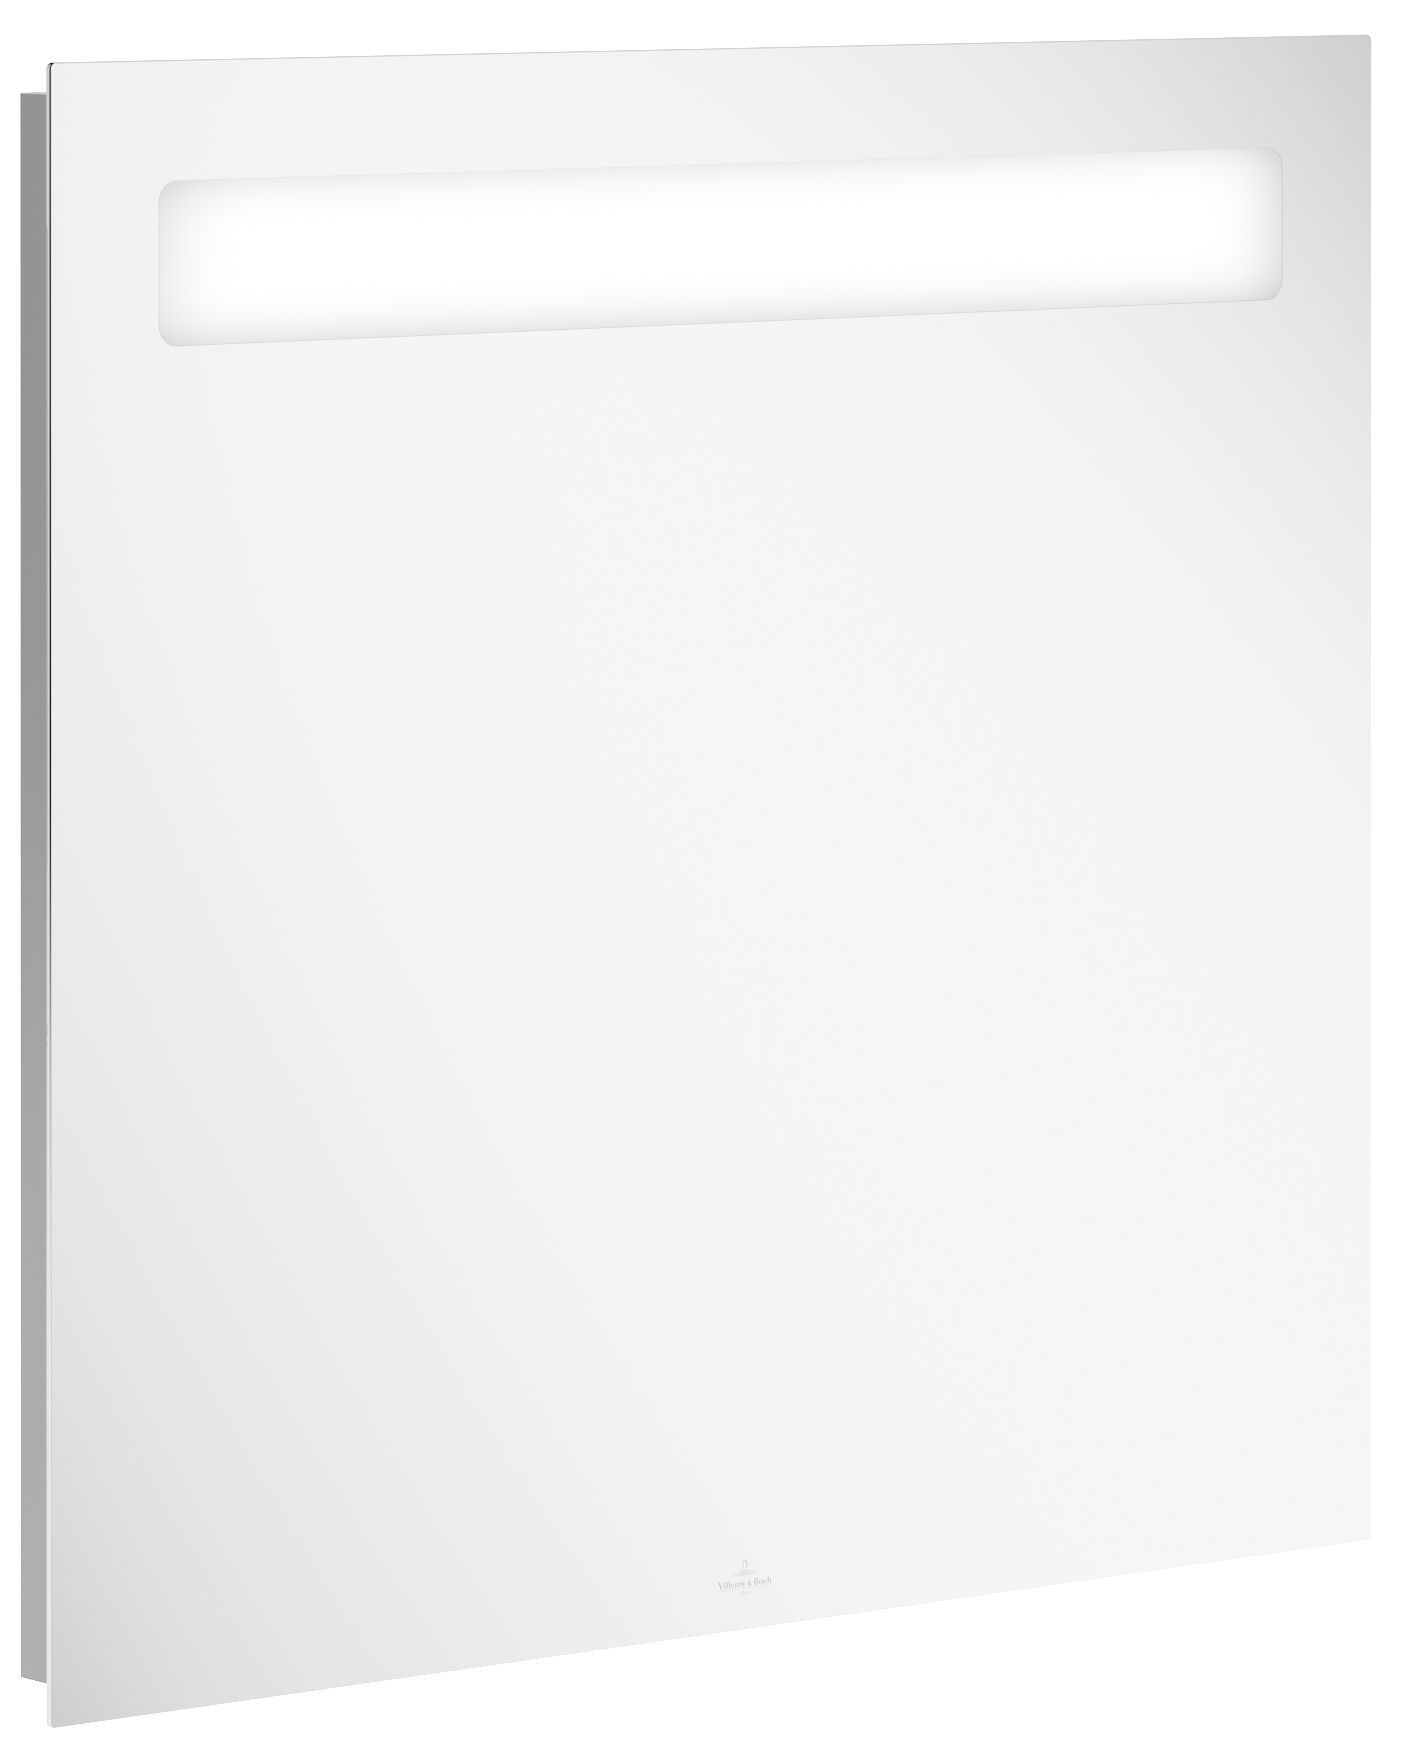 Villeroy & Boch More to See 14 Spiegel mit LED-Beleuchtung B:70 cm A4297000